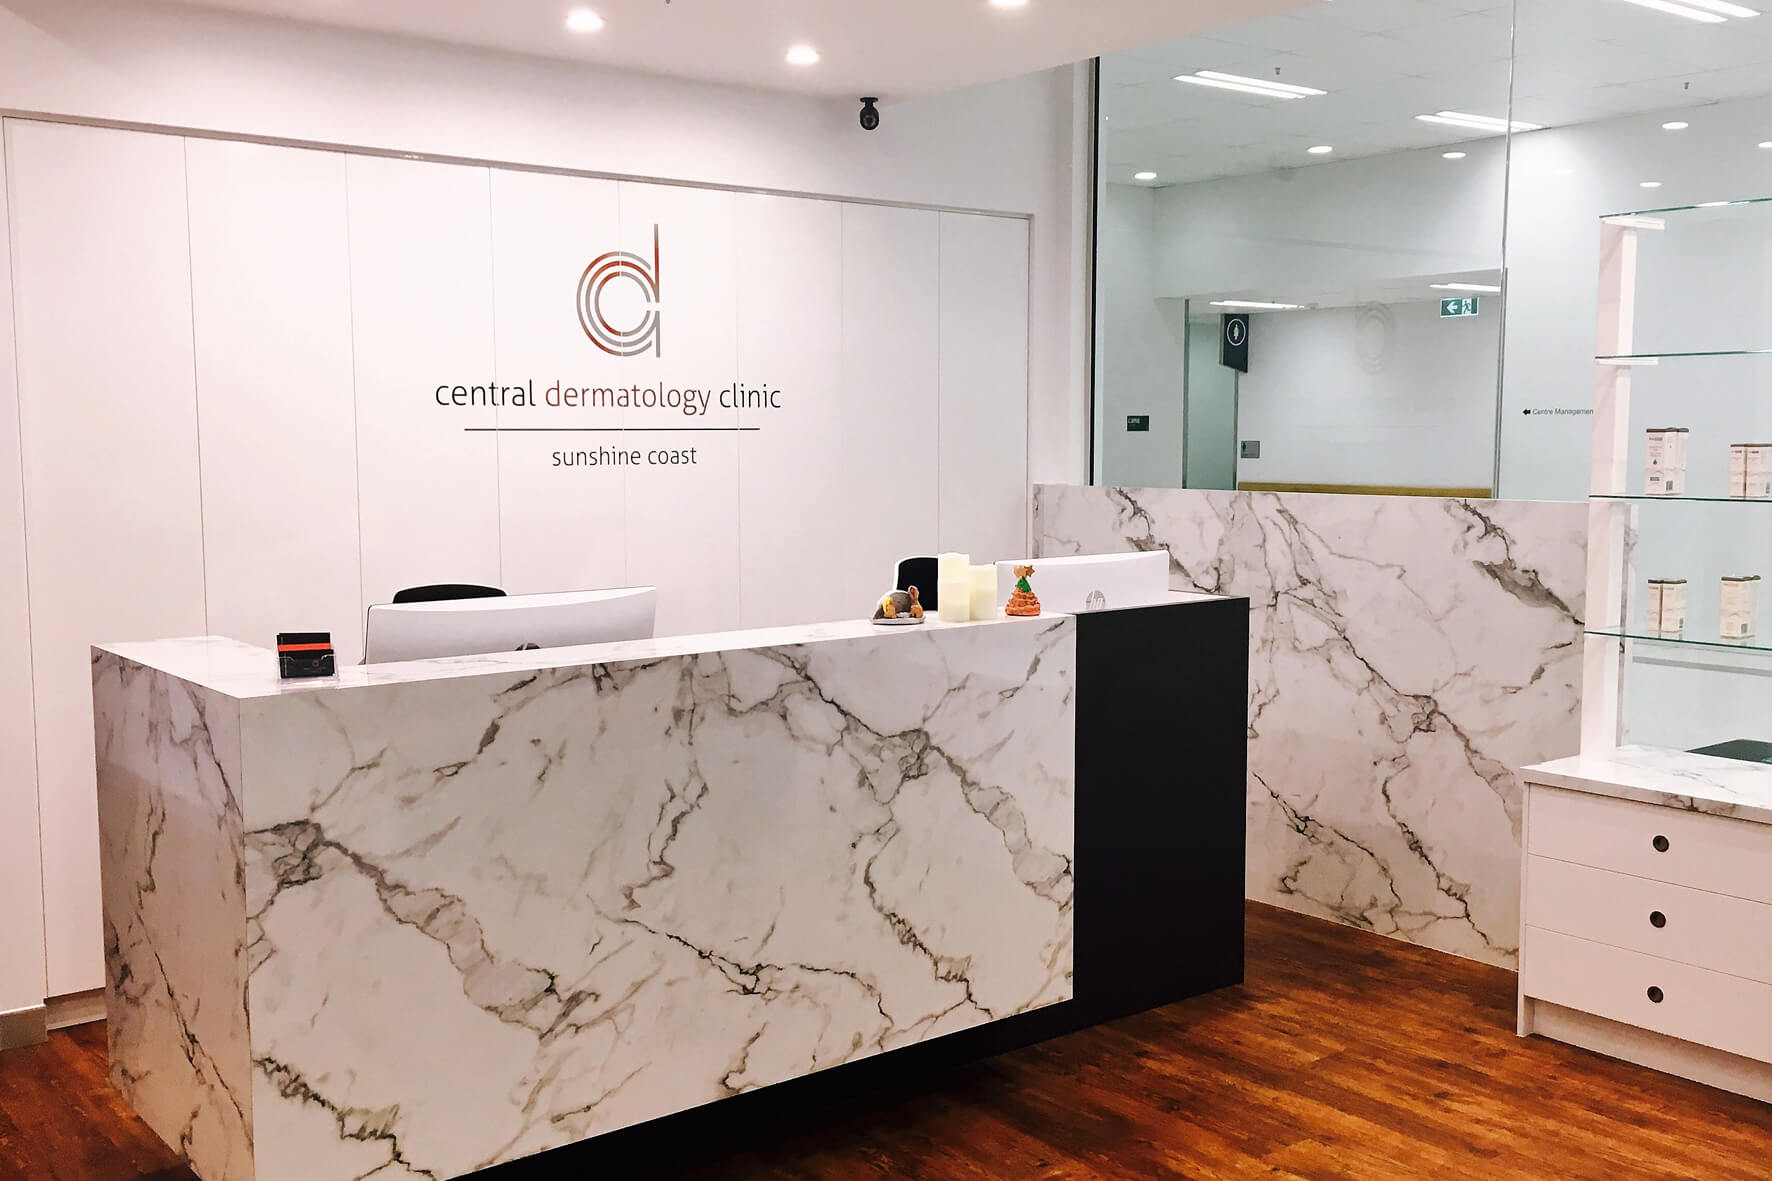 Central Dermatology Clinic | Central Dermatology Clinic